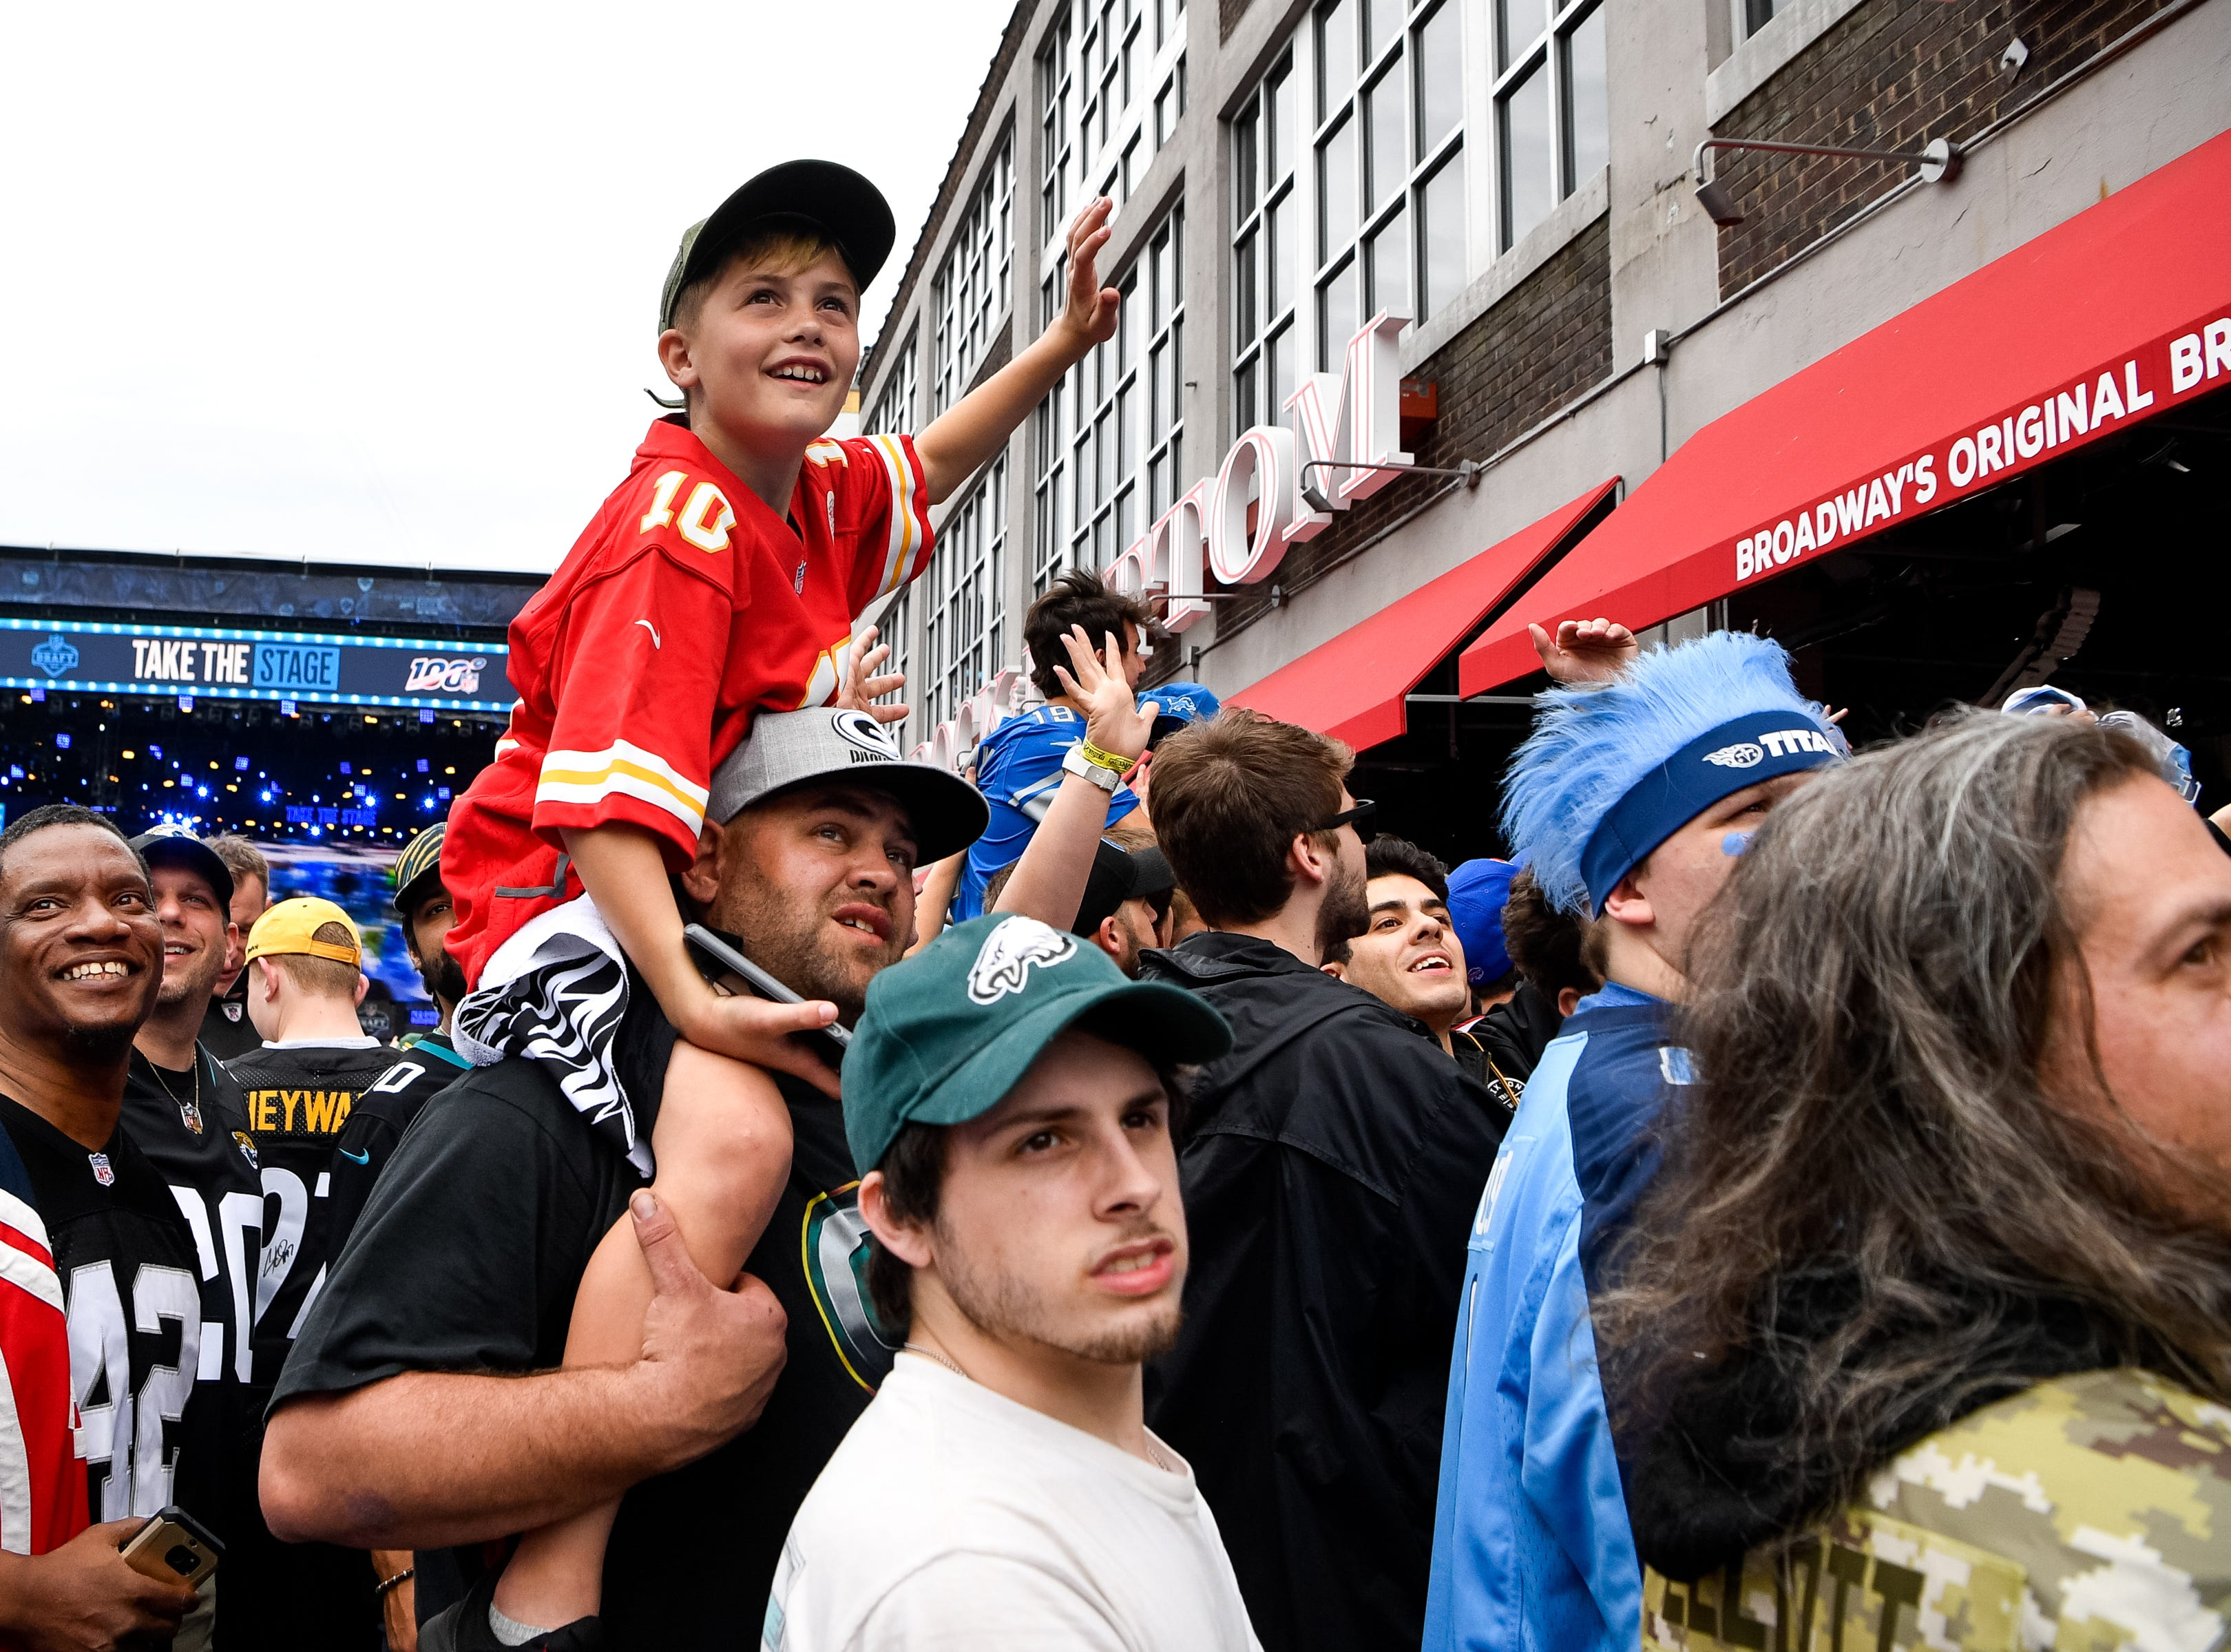 Grady Phelps, 9, sits on his father, Michael Phelps', shoulders to watch himself on TV along Lower Broadway during the NFL Draft Thursday, April 25, 2019, in Nashville, Tenn.